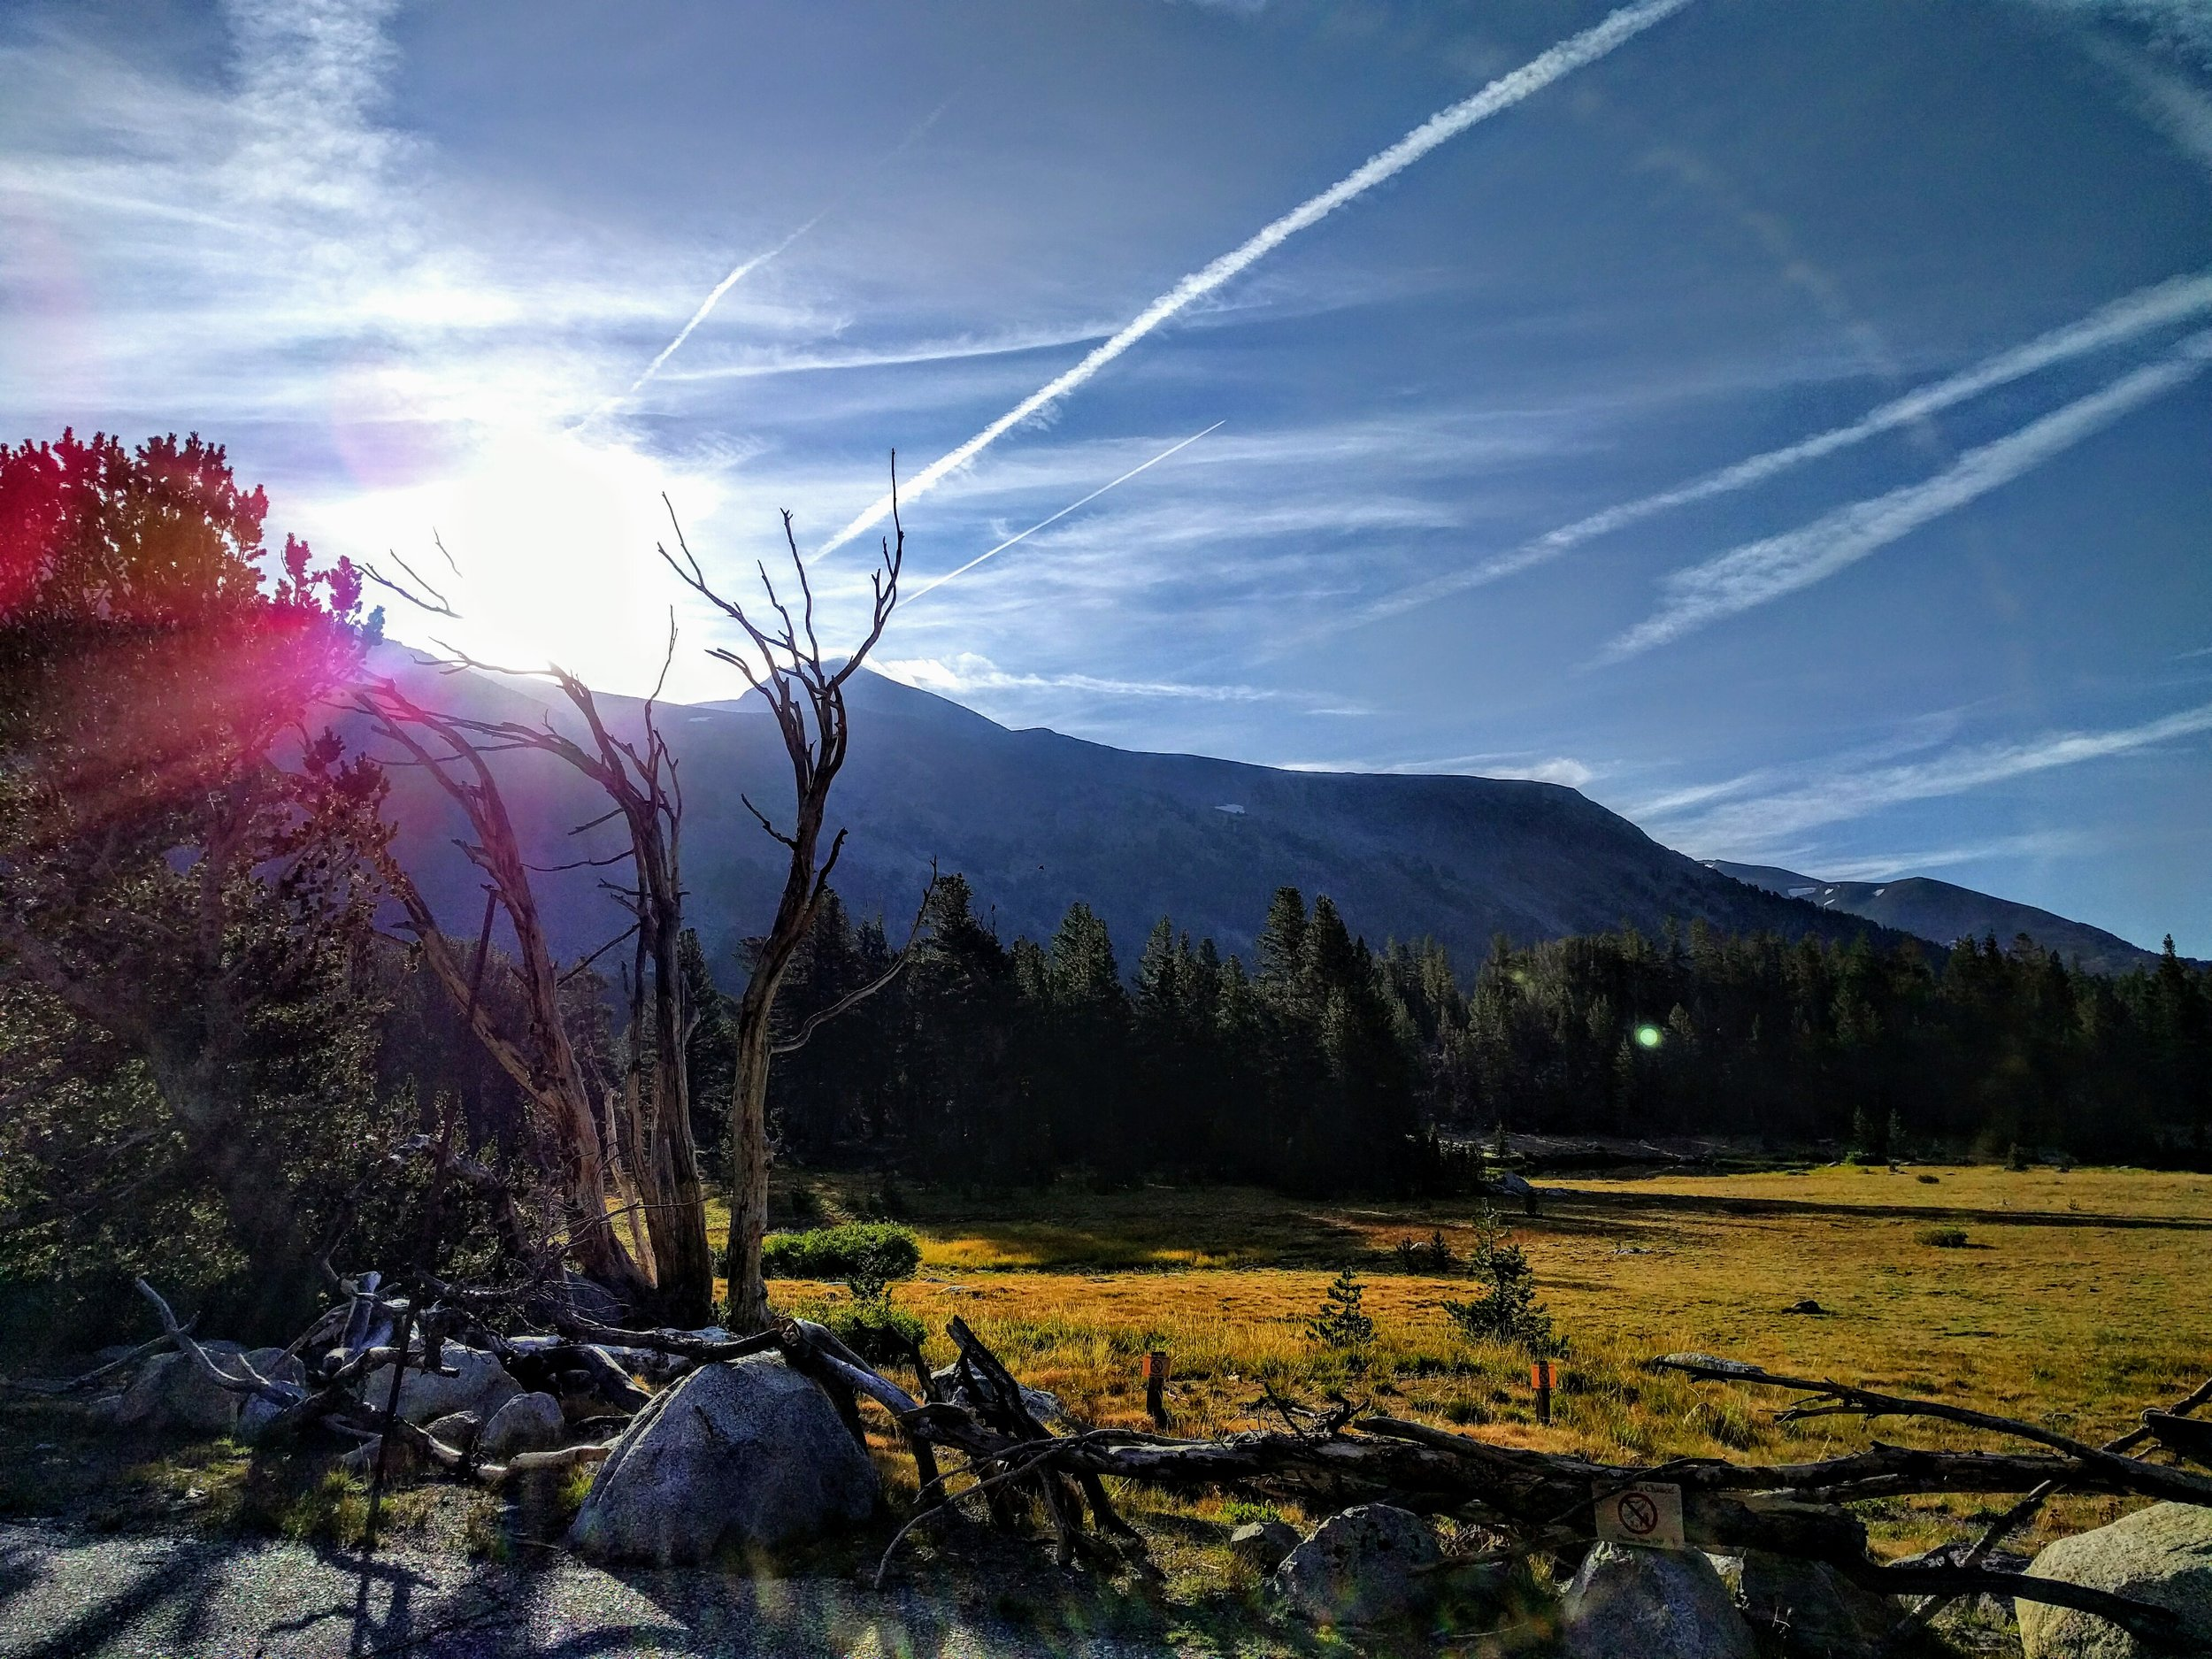 This picture is taken from a recent hike up Mt Dana, the second highest peak in Yosemite National Park, one of the most beautiful and charming places in California. To me, this picture symbolizes light and hope.